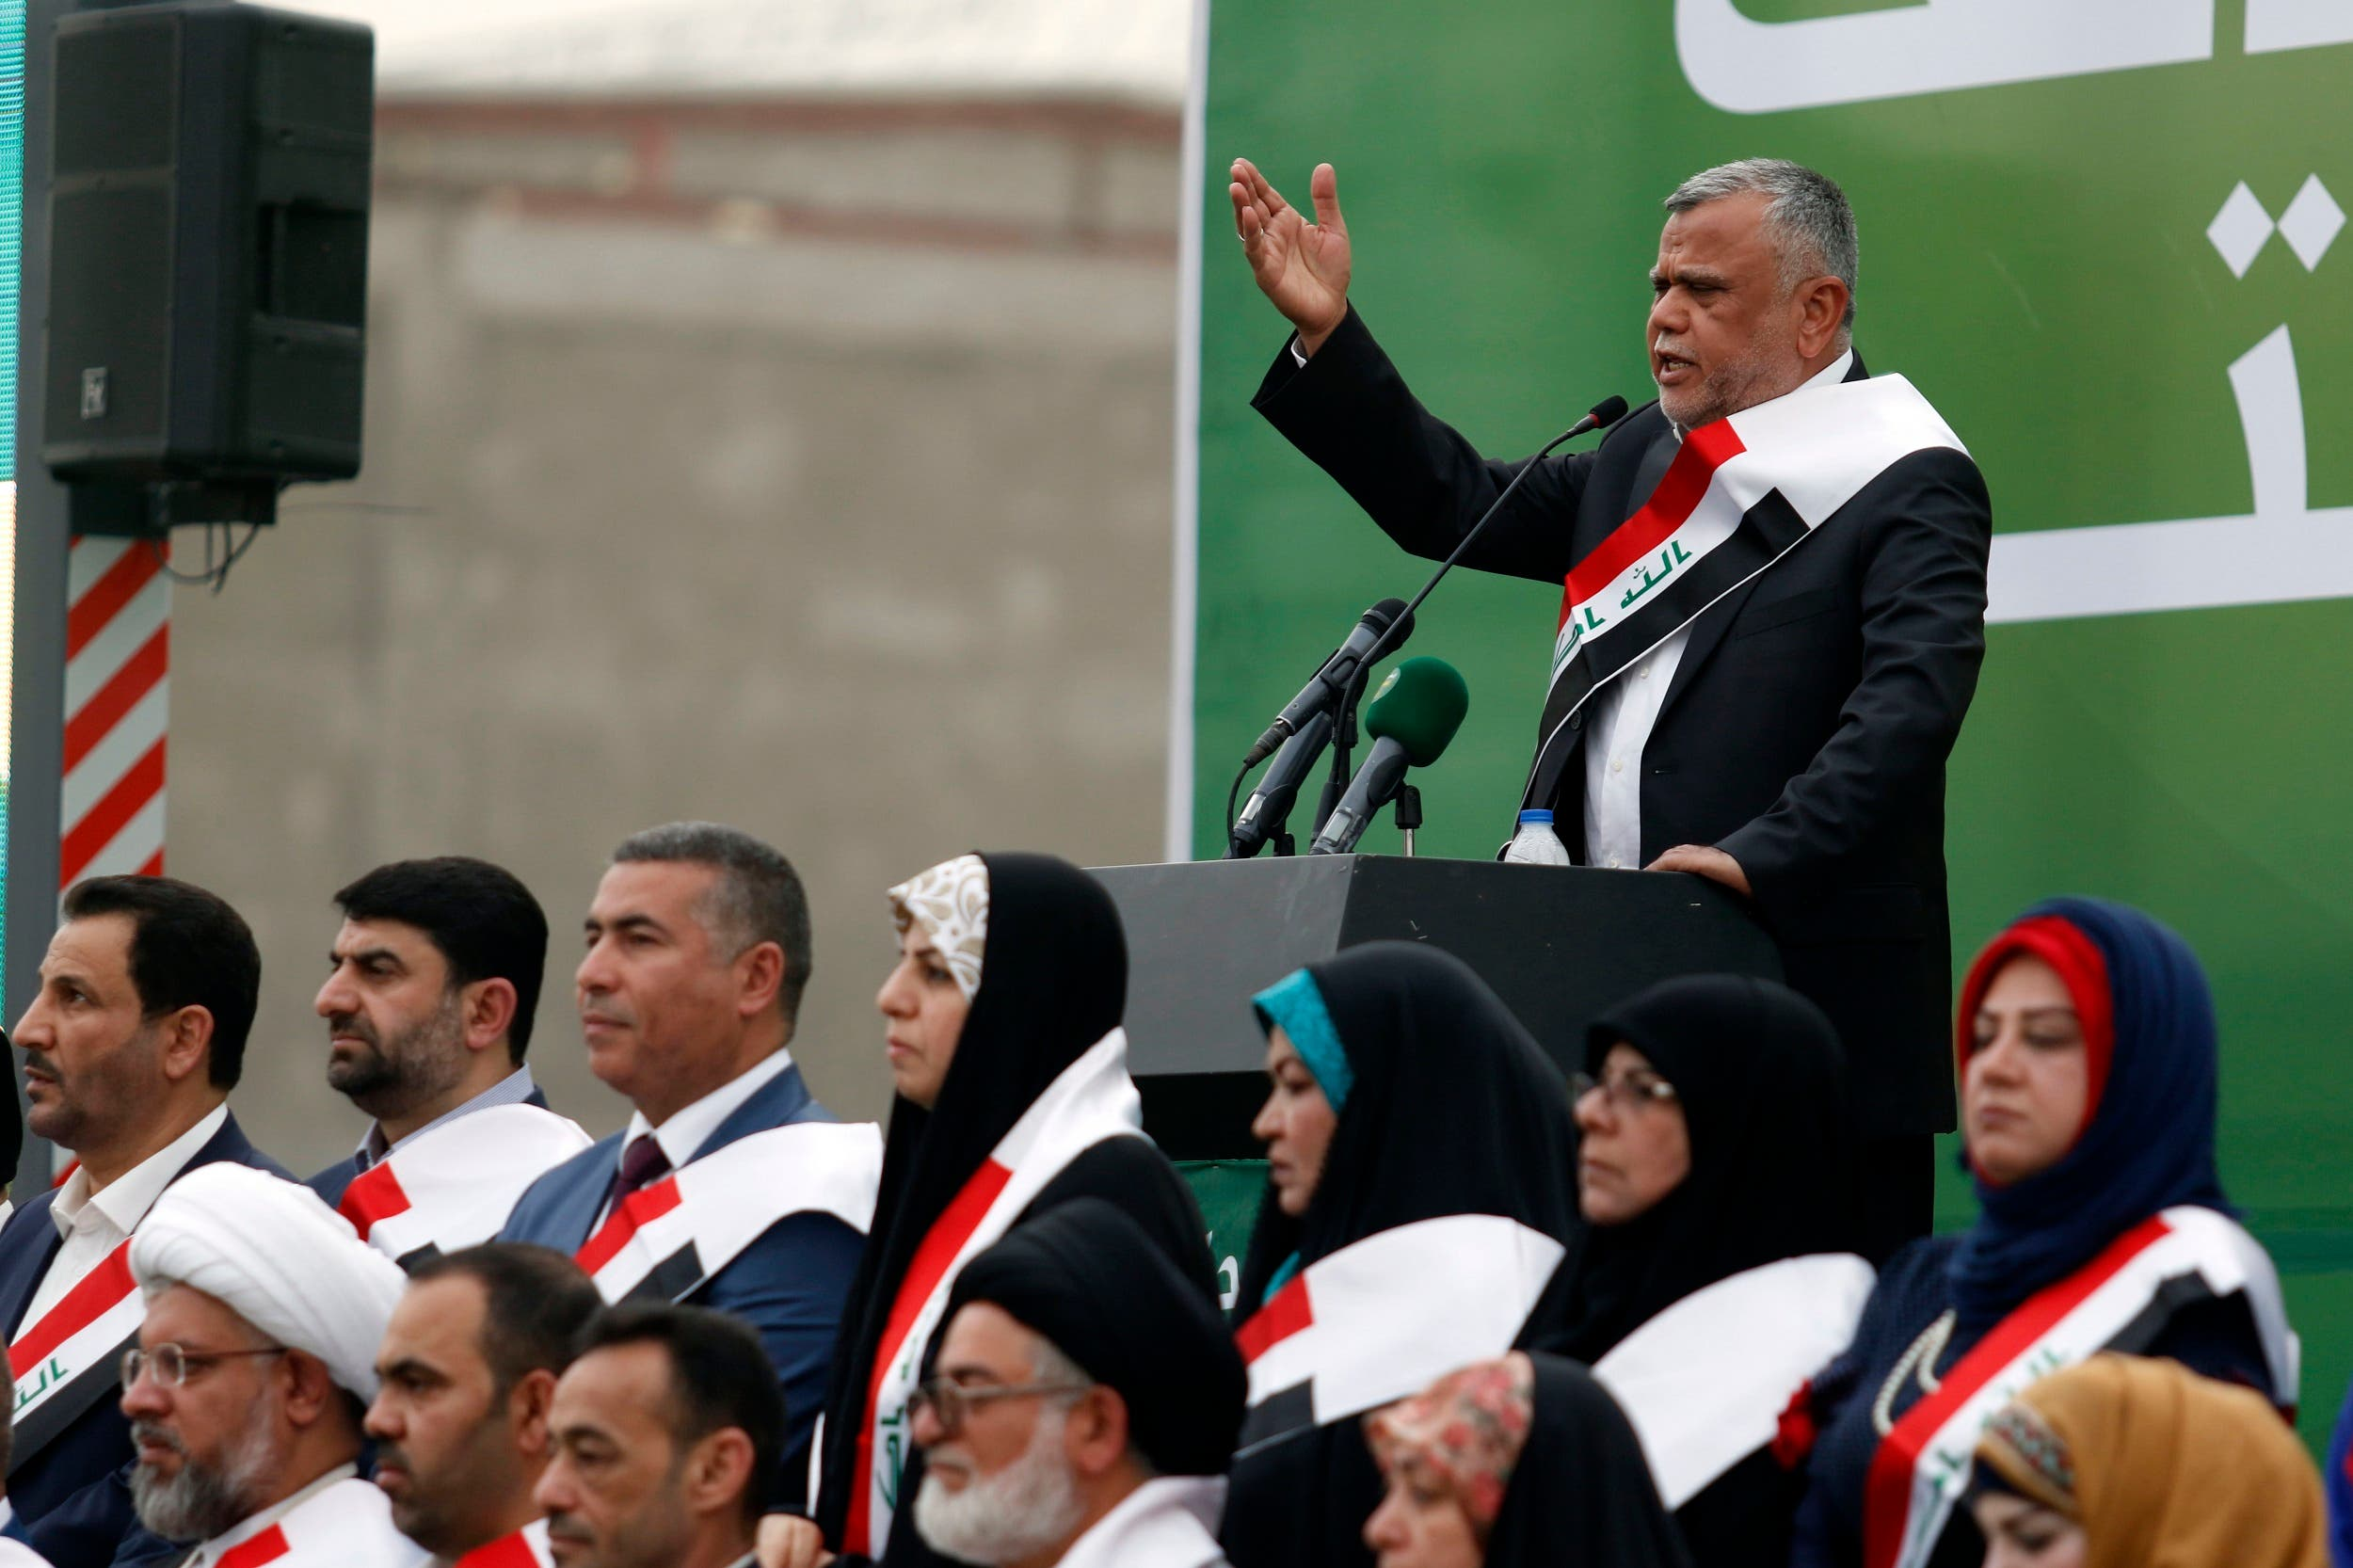 Hadi al-Ameri, head of the Badr organization and leader of Hashed al-Shaabi paramilitary units, speaks during a campaign gathering in Basra on April 21, 2018. (AFP)